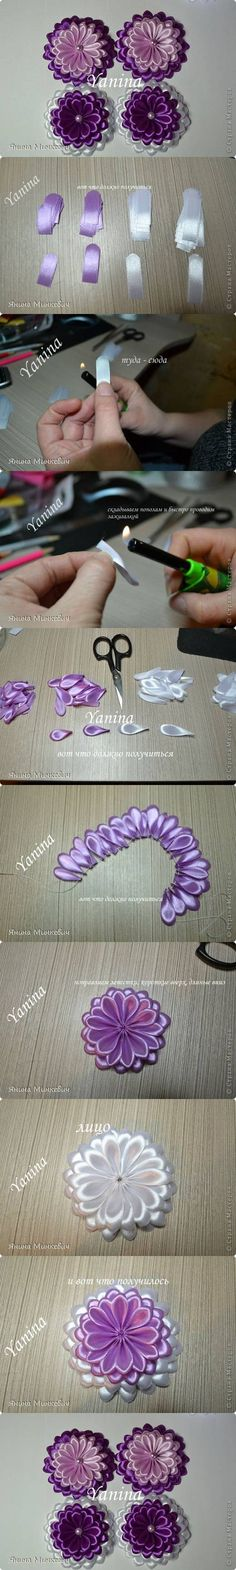 DIY Modular Ribbon Flower DIY Projects | UsefulDIY.com Follow us on Facebook ==> https://www.facebook.com/UsefulDiy